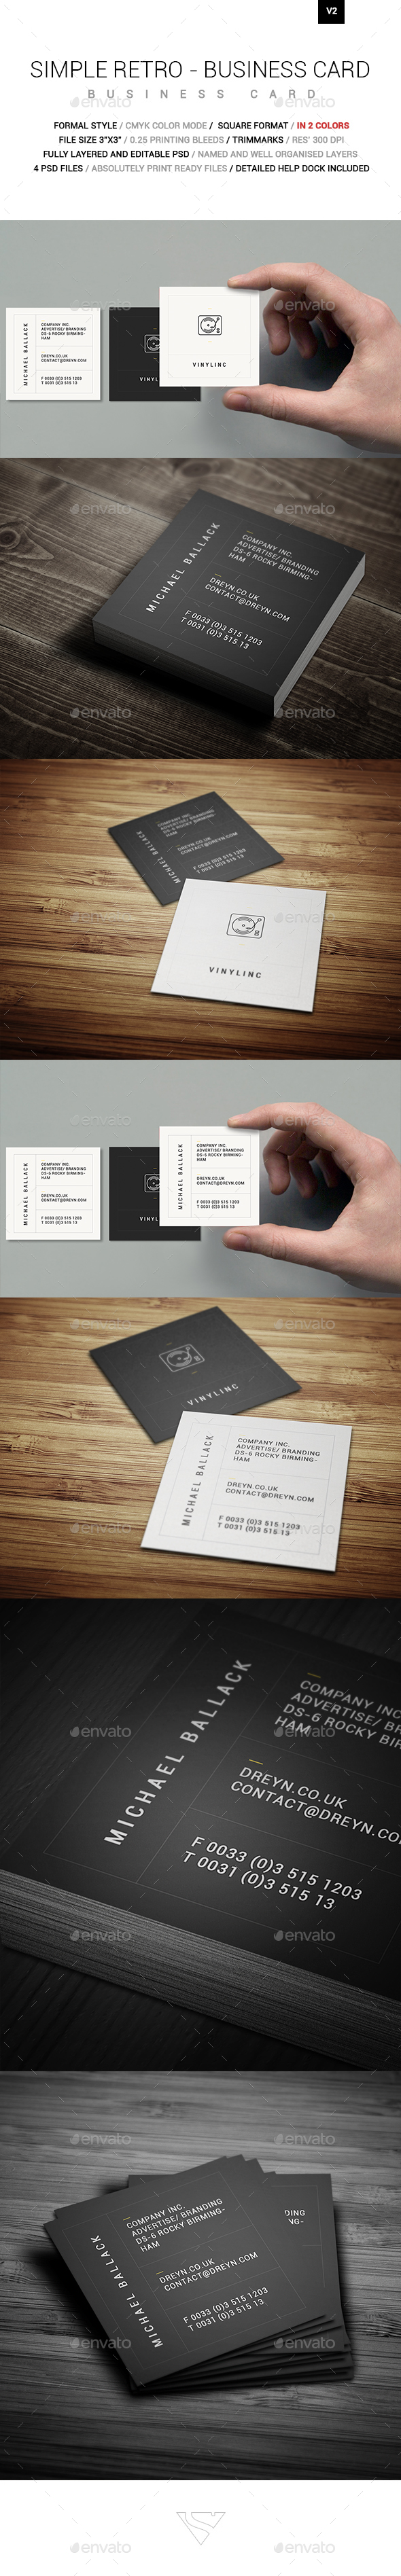 Lovely Pics Of Square Business Cards Size - Business Cards and Resume